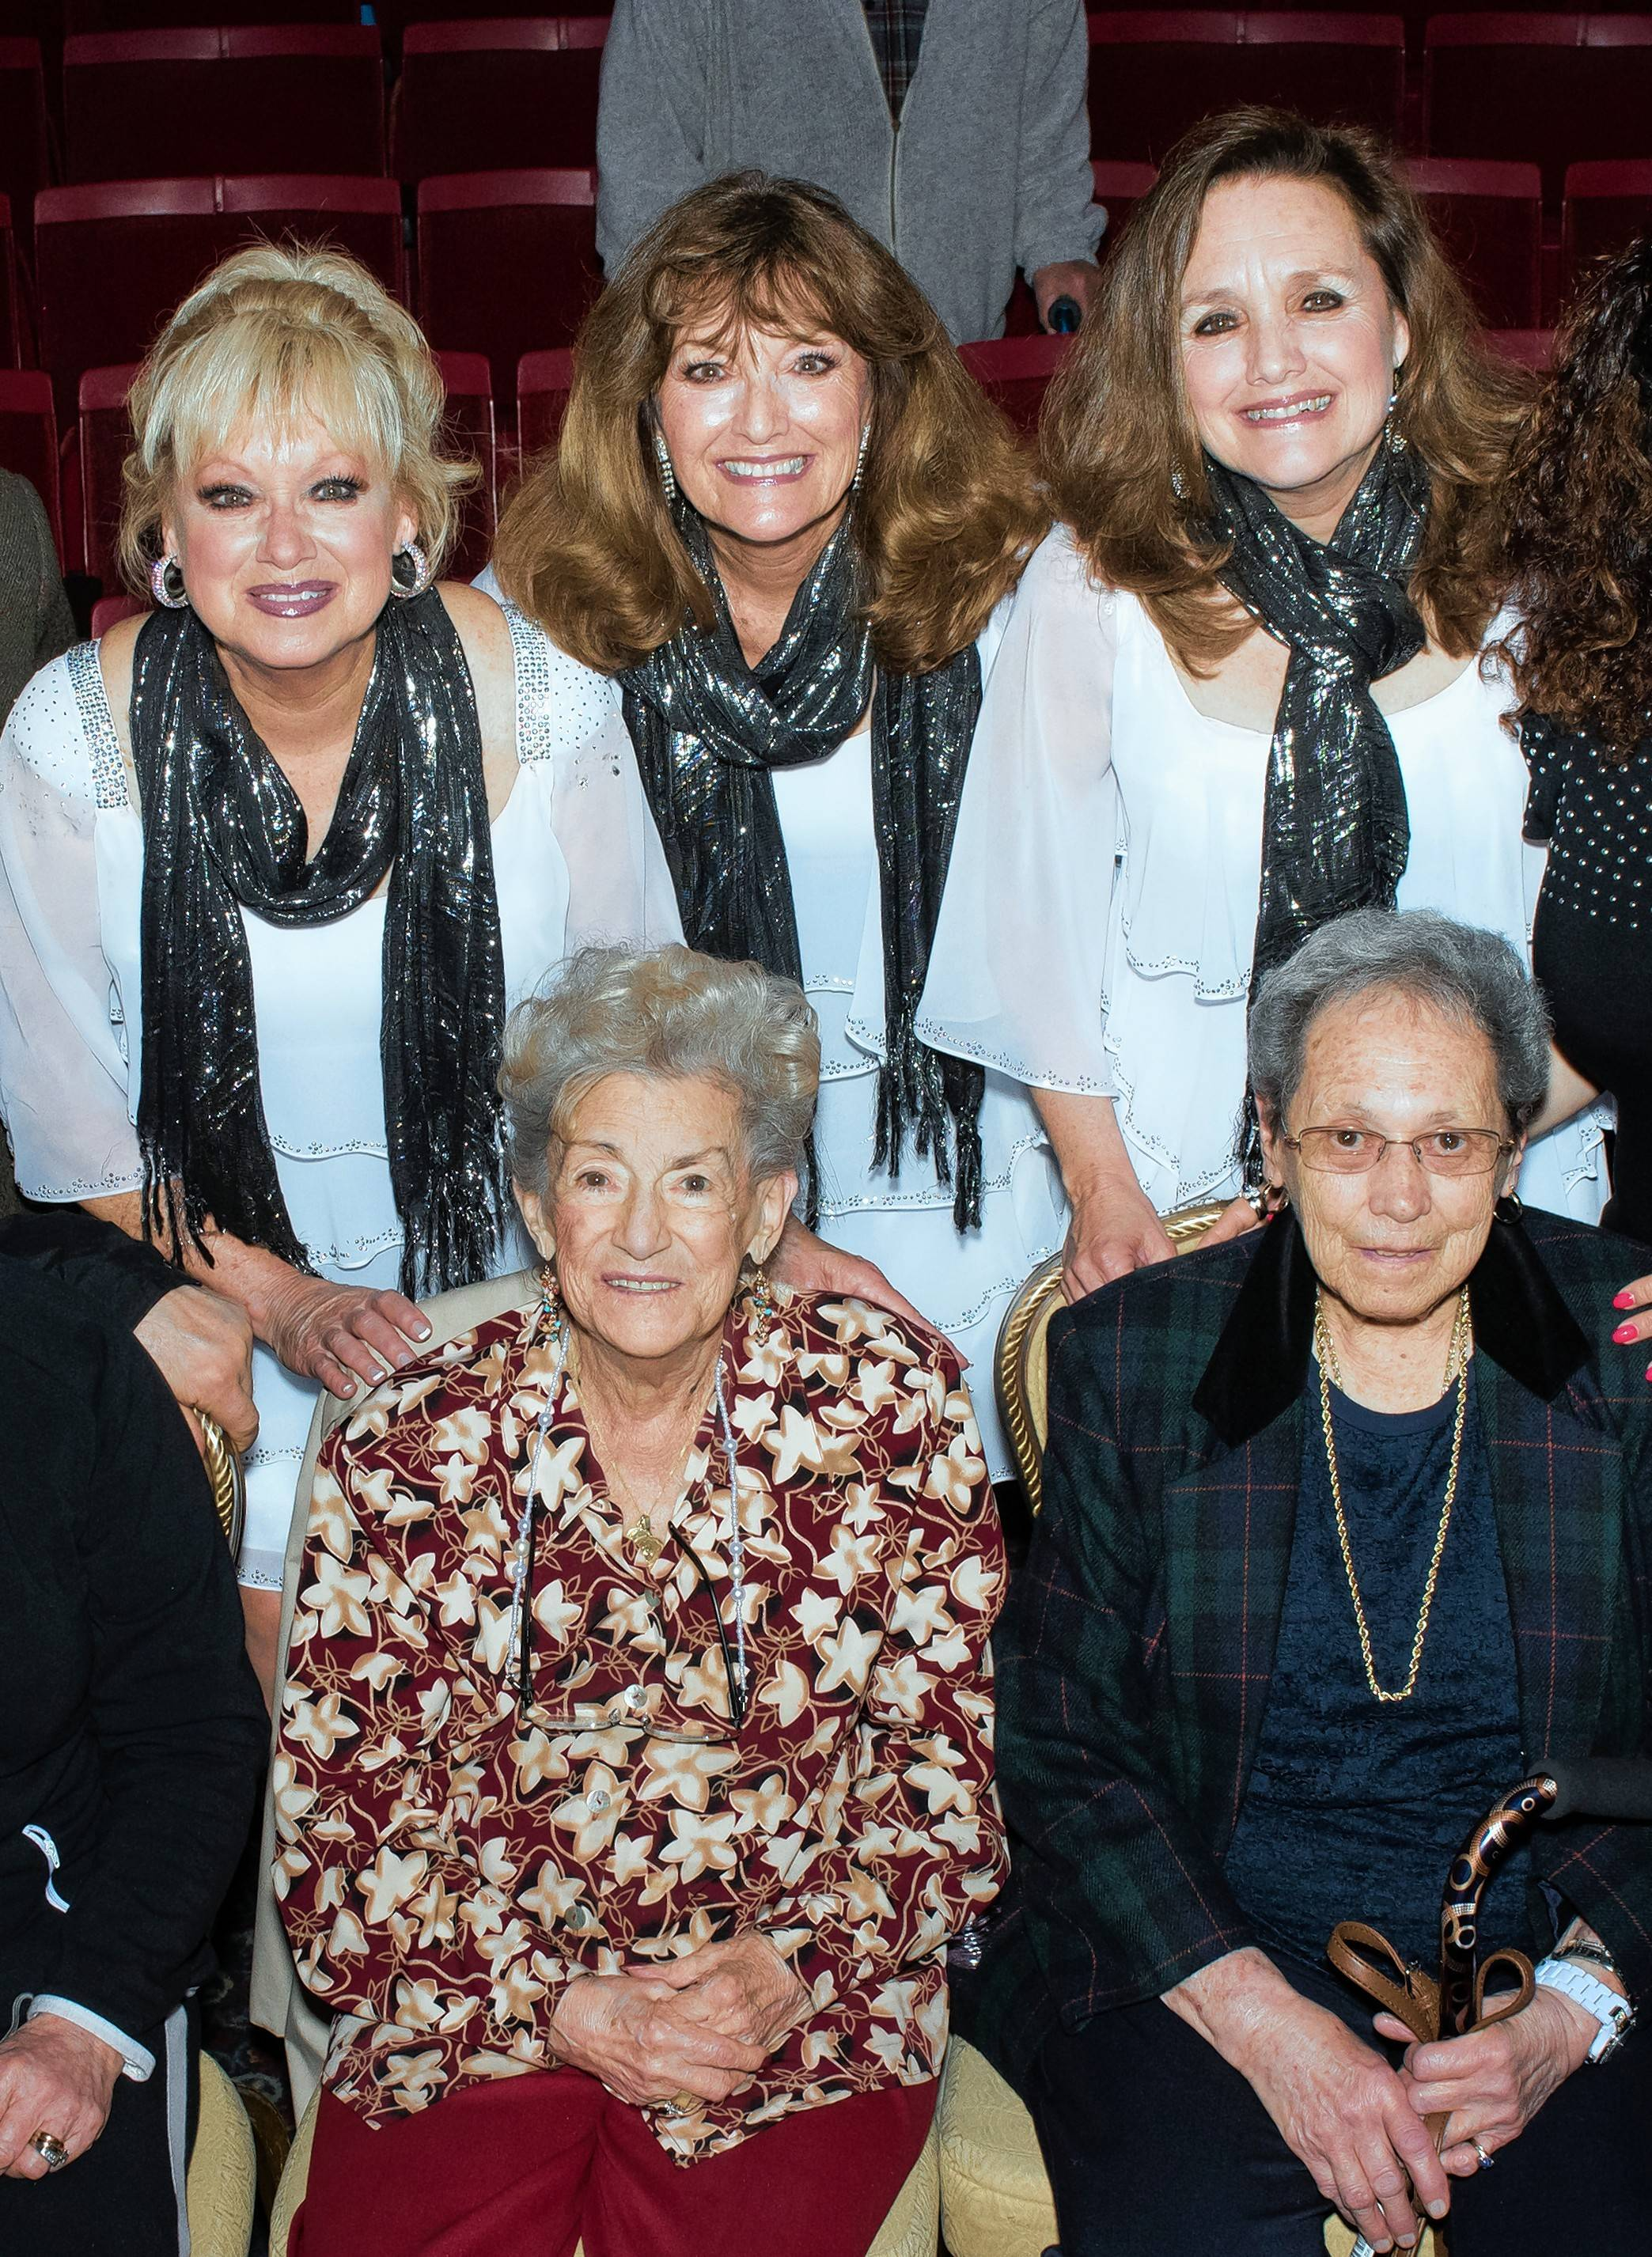 The Lennon Sisters, pictured with Ron Onesti's mom, front row left, performed at The Arcada in 2017. Ron's mother, a big fan of the Lennon Sisters, passed away shortly after the concert.